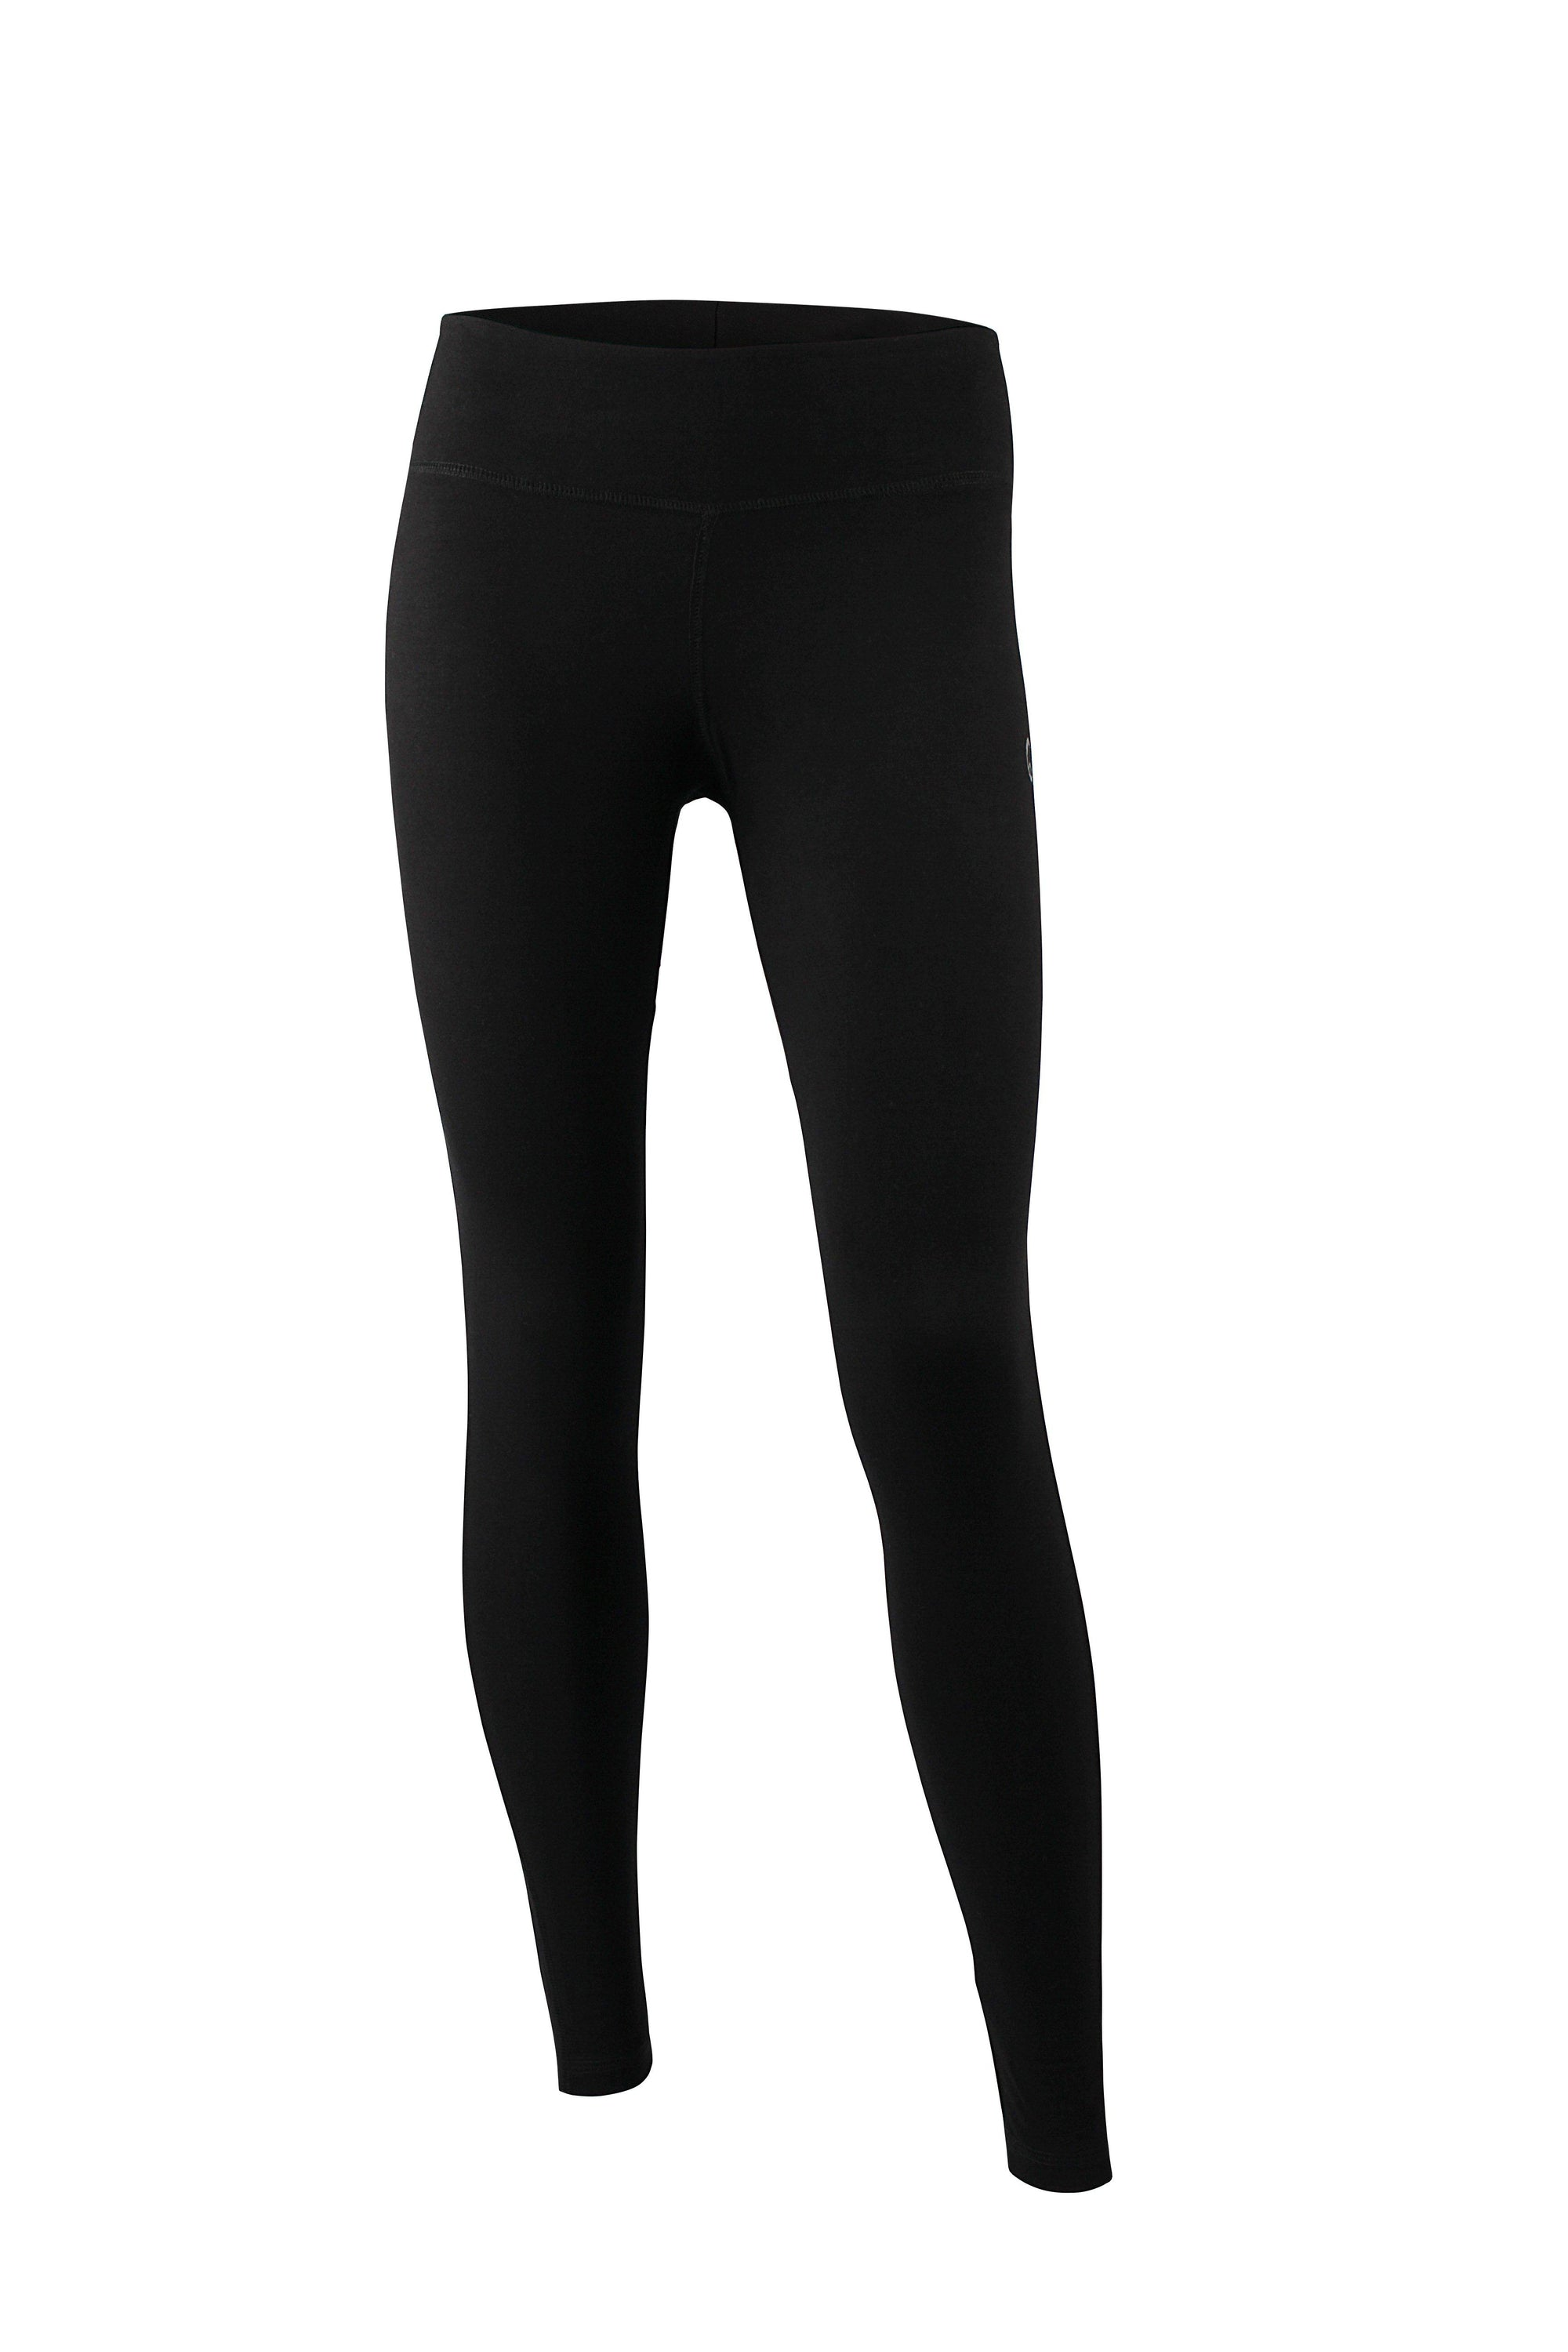 OGNX - Basic Leggings - Organic Cotton - Weekendbee - sustainable sportswear